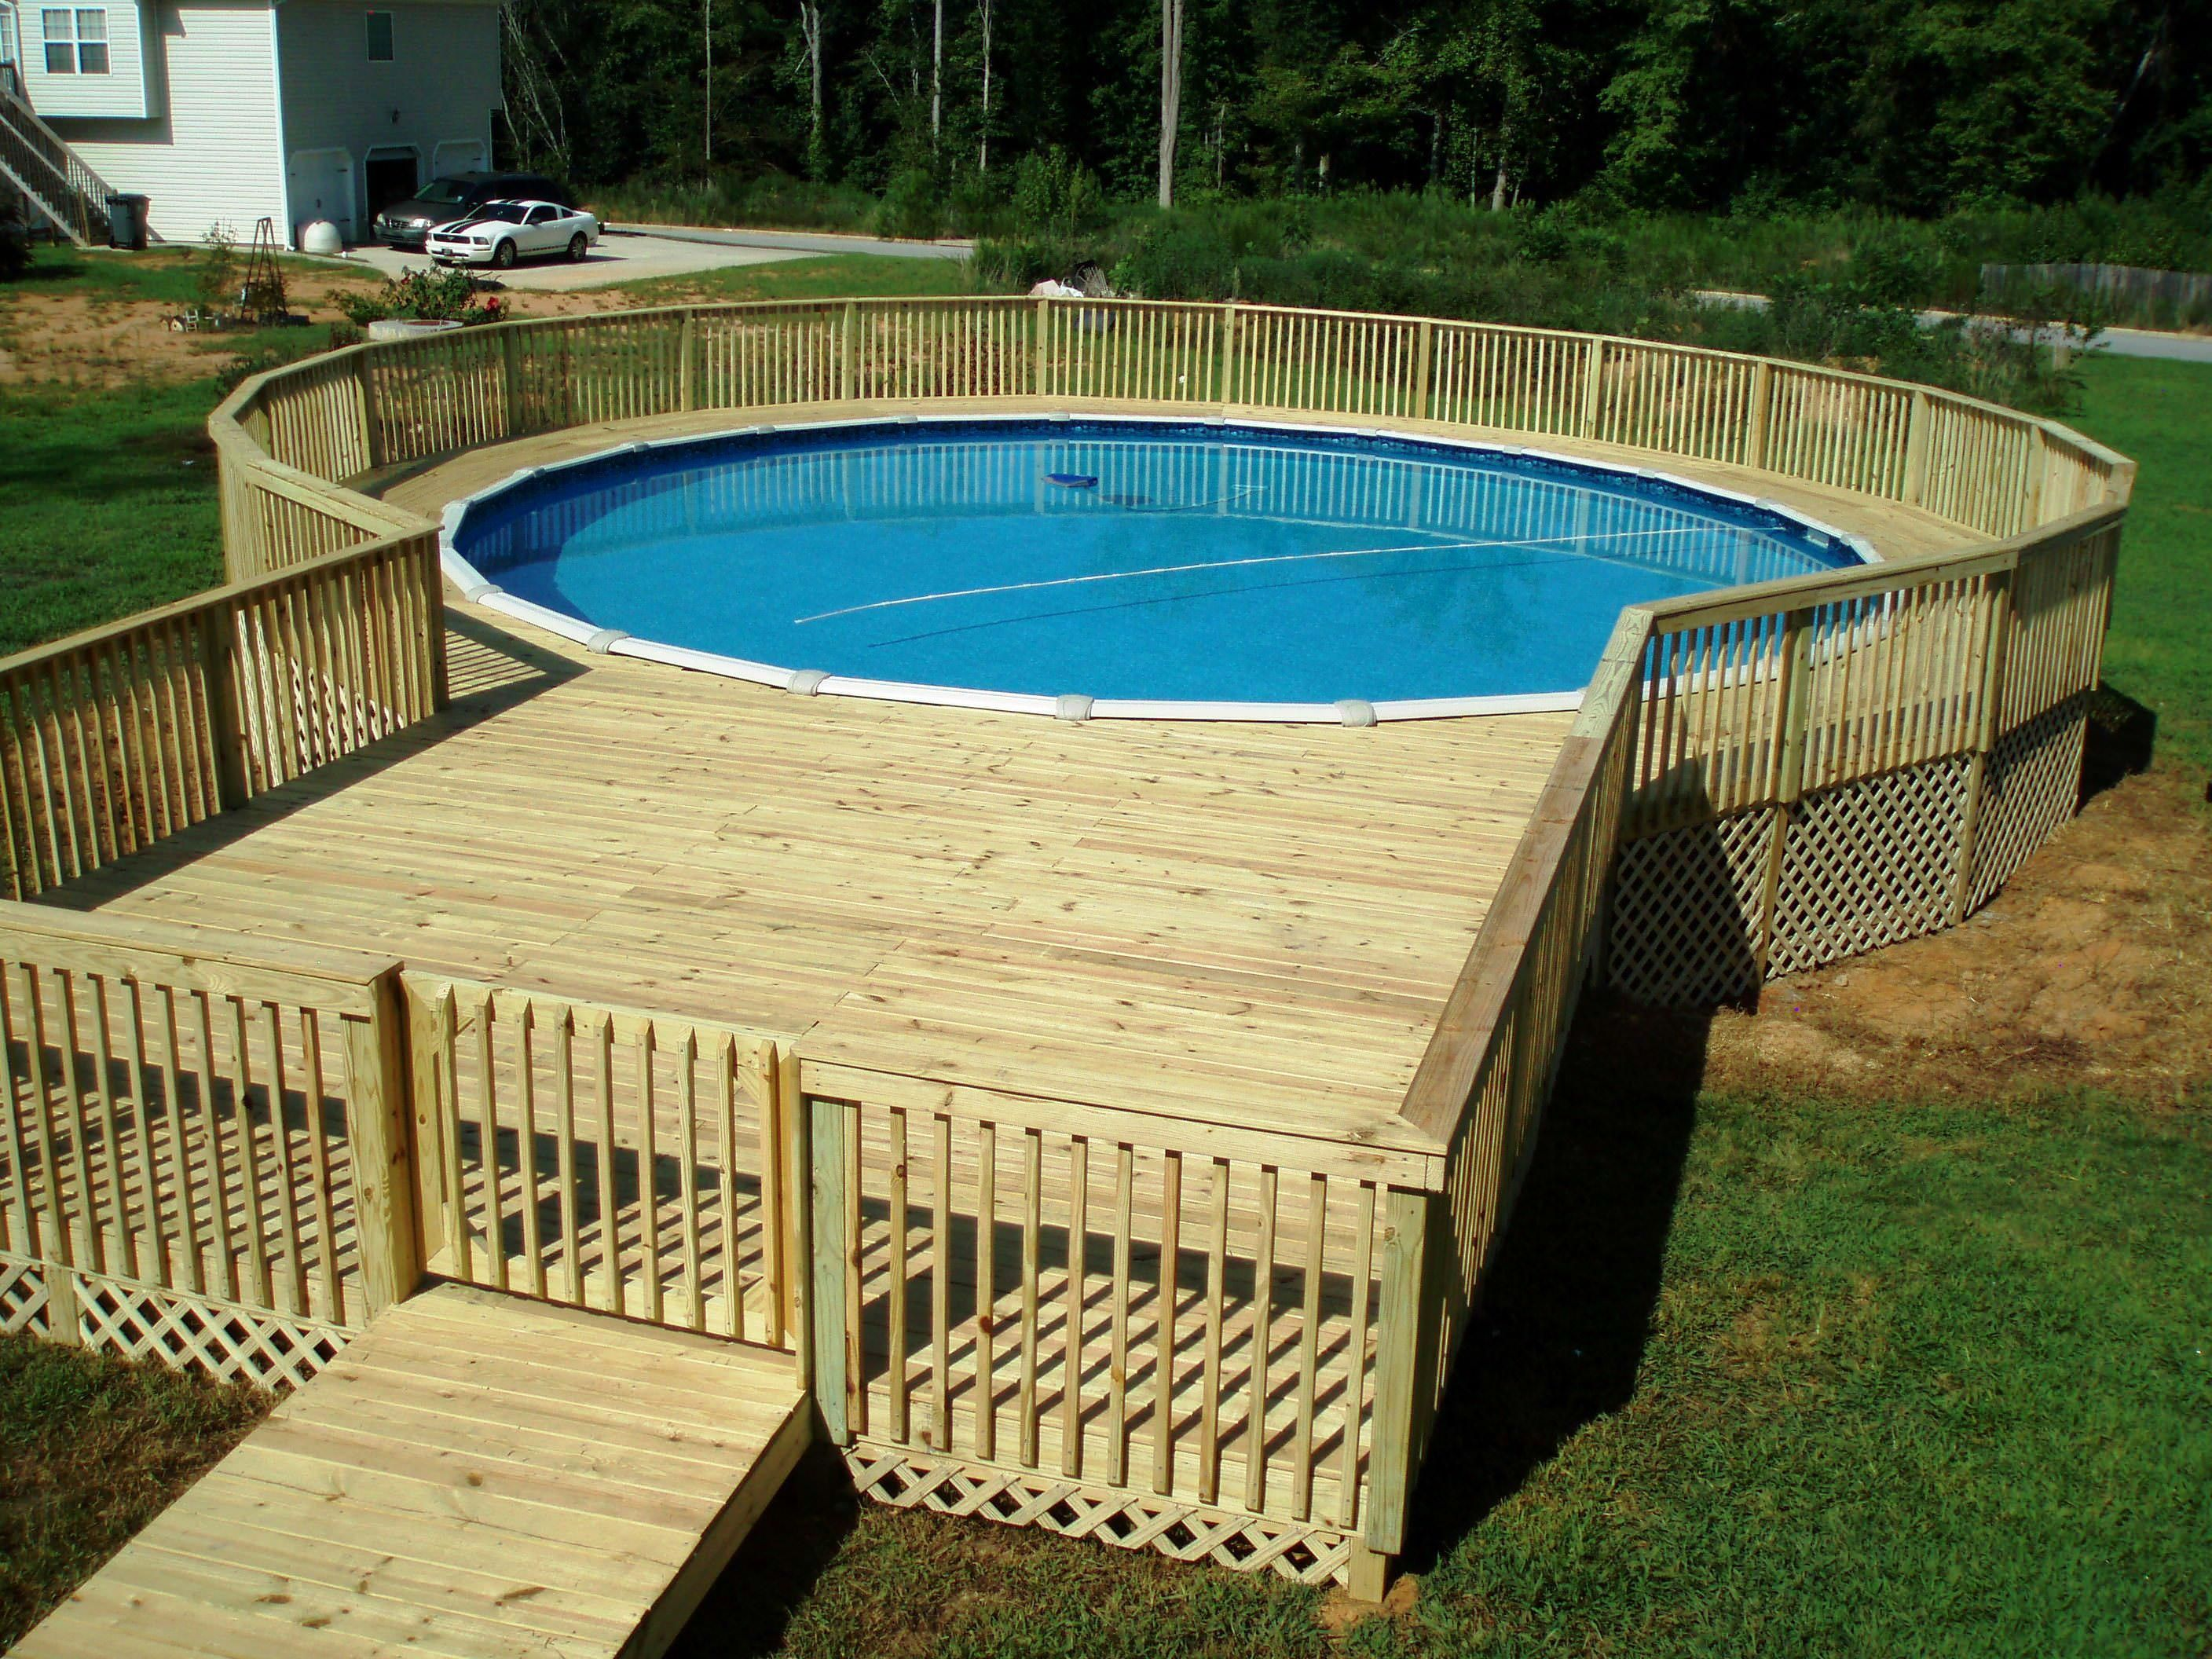 Wooden Decks Around Above Ground Pools Your Decking Ideas